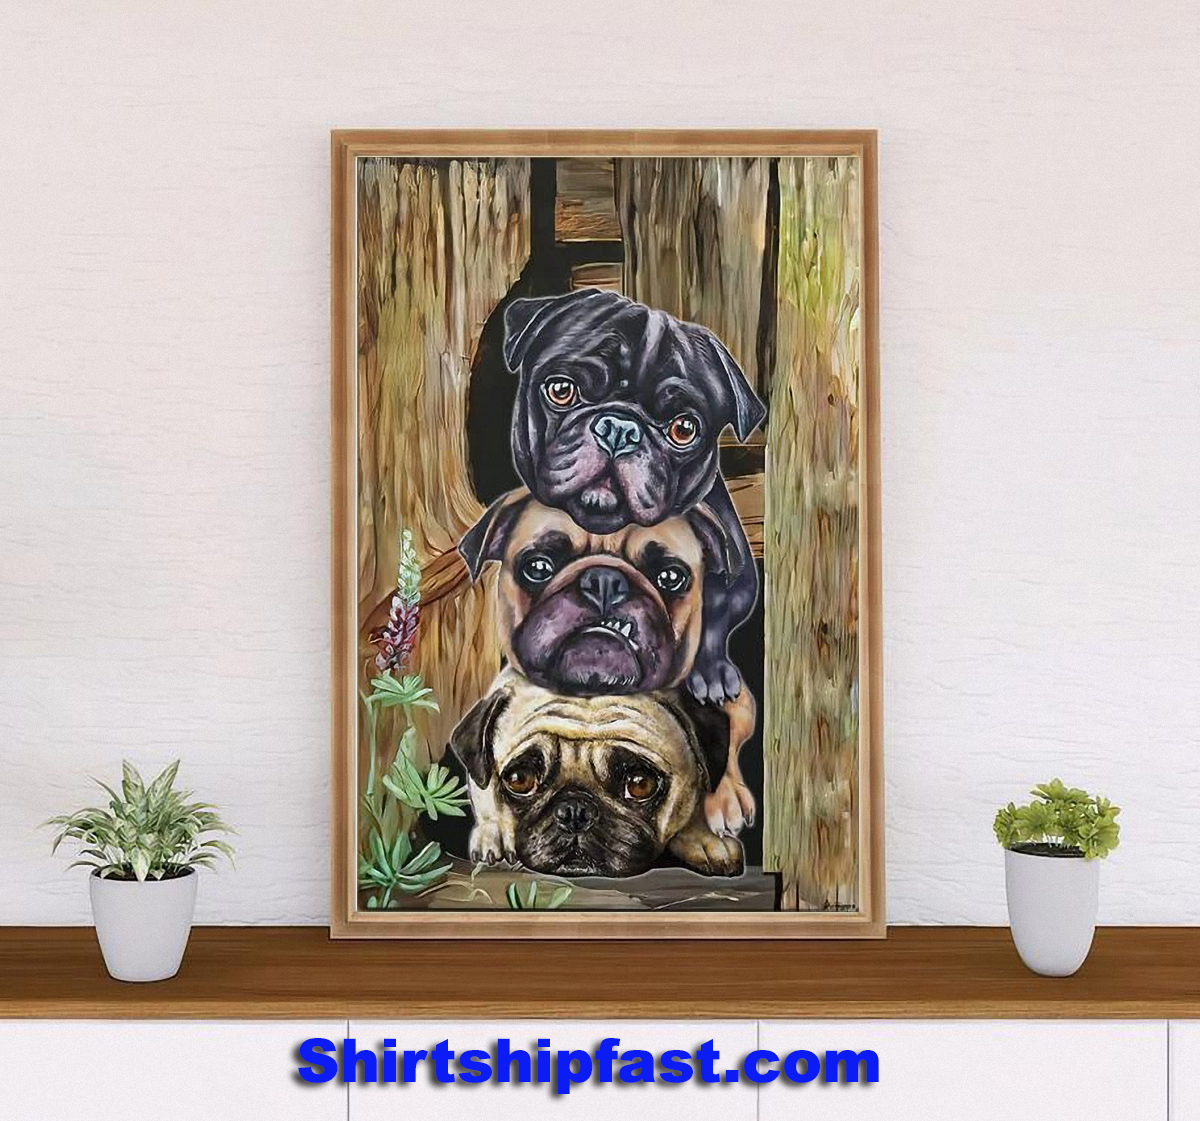 Pug dogs canvas wall art - Picture 1